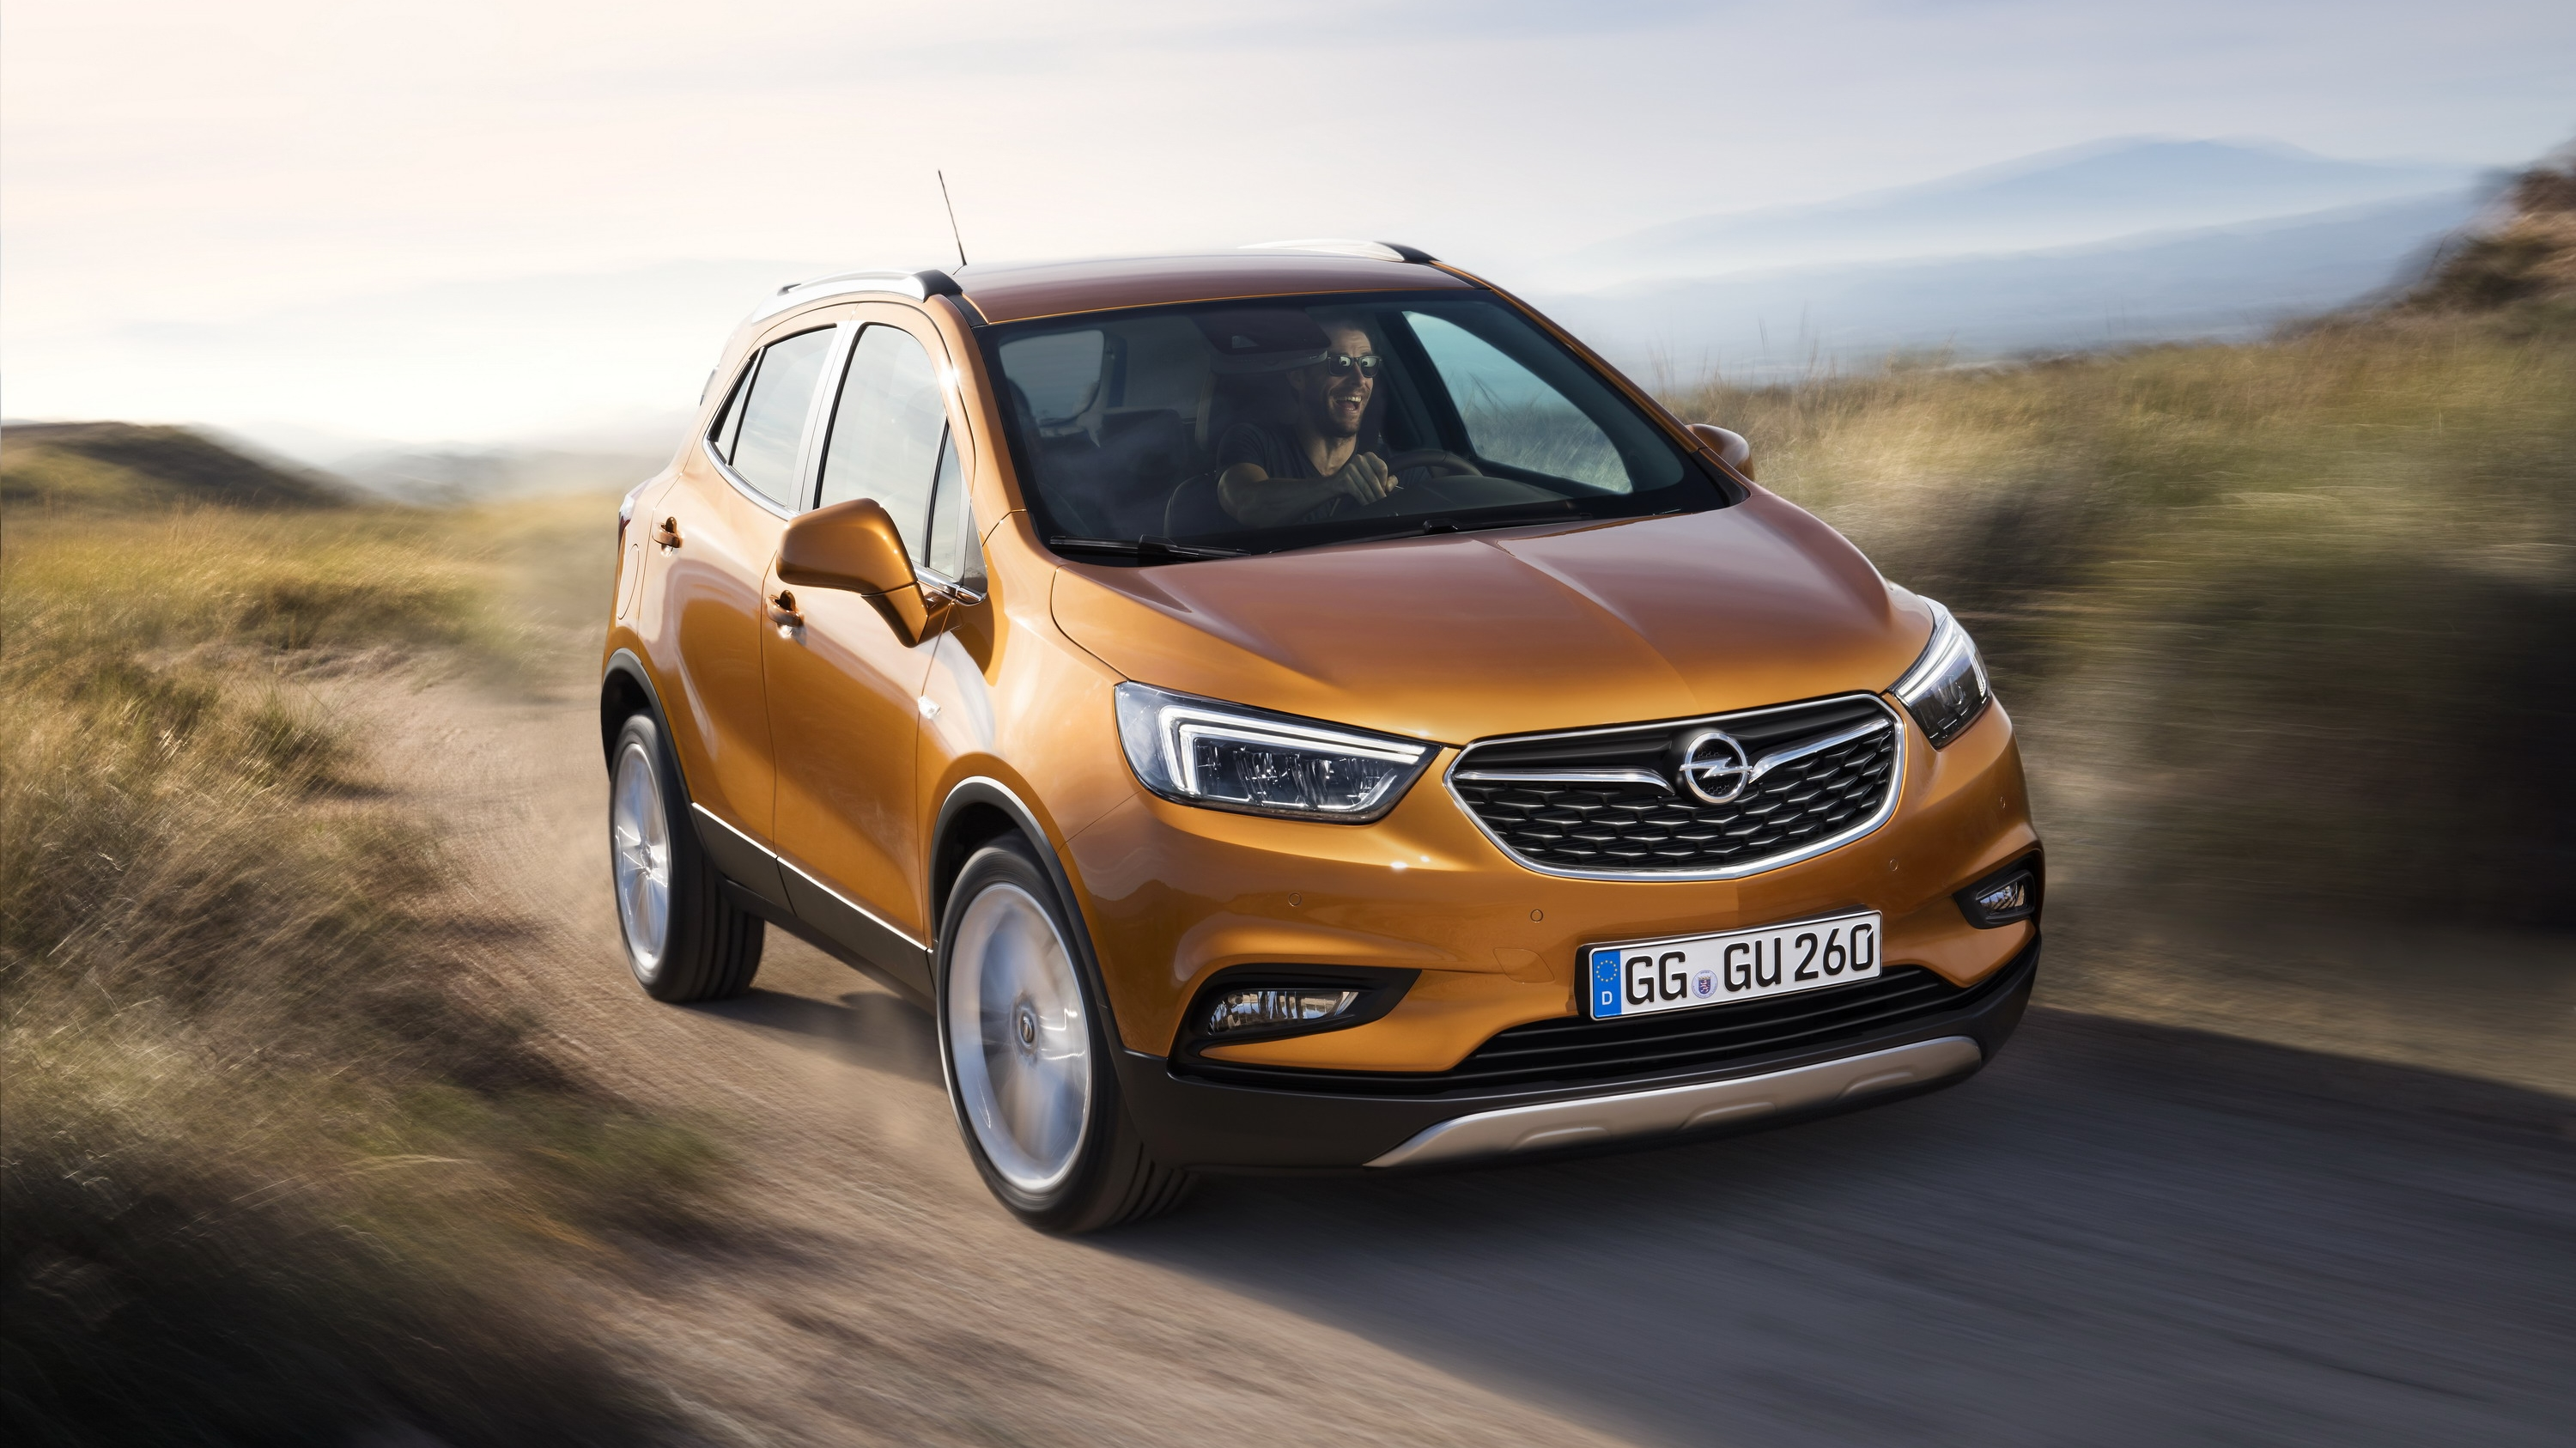 2016 opel mokka x review gallery top speed. Black Bedroom Furniture Sets. Home Design Ideas